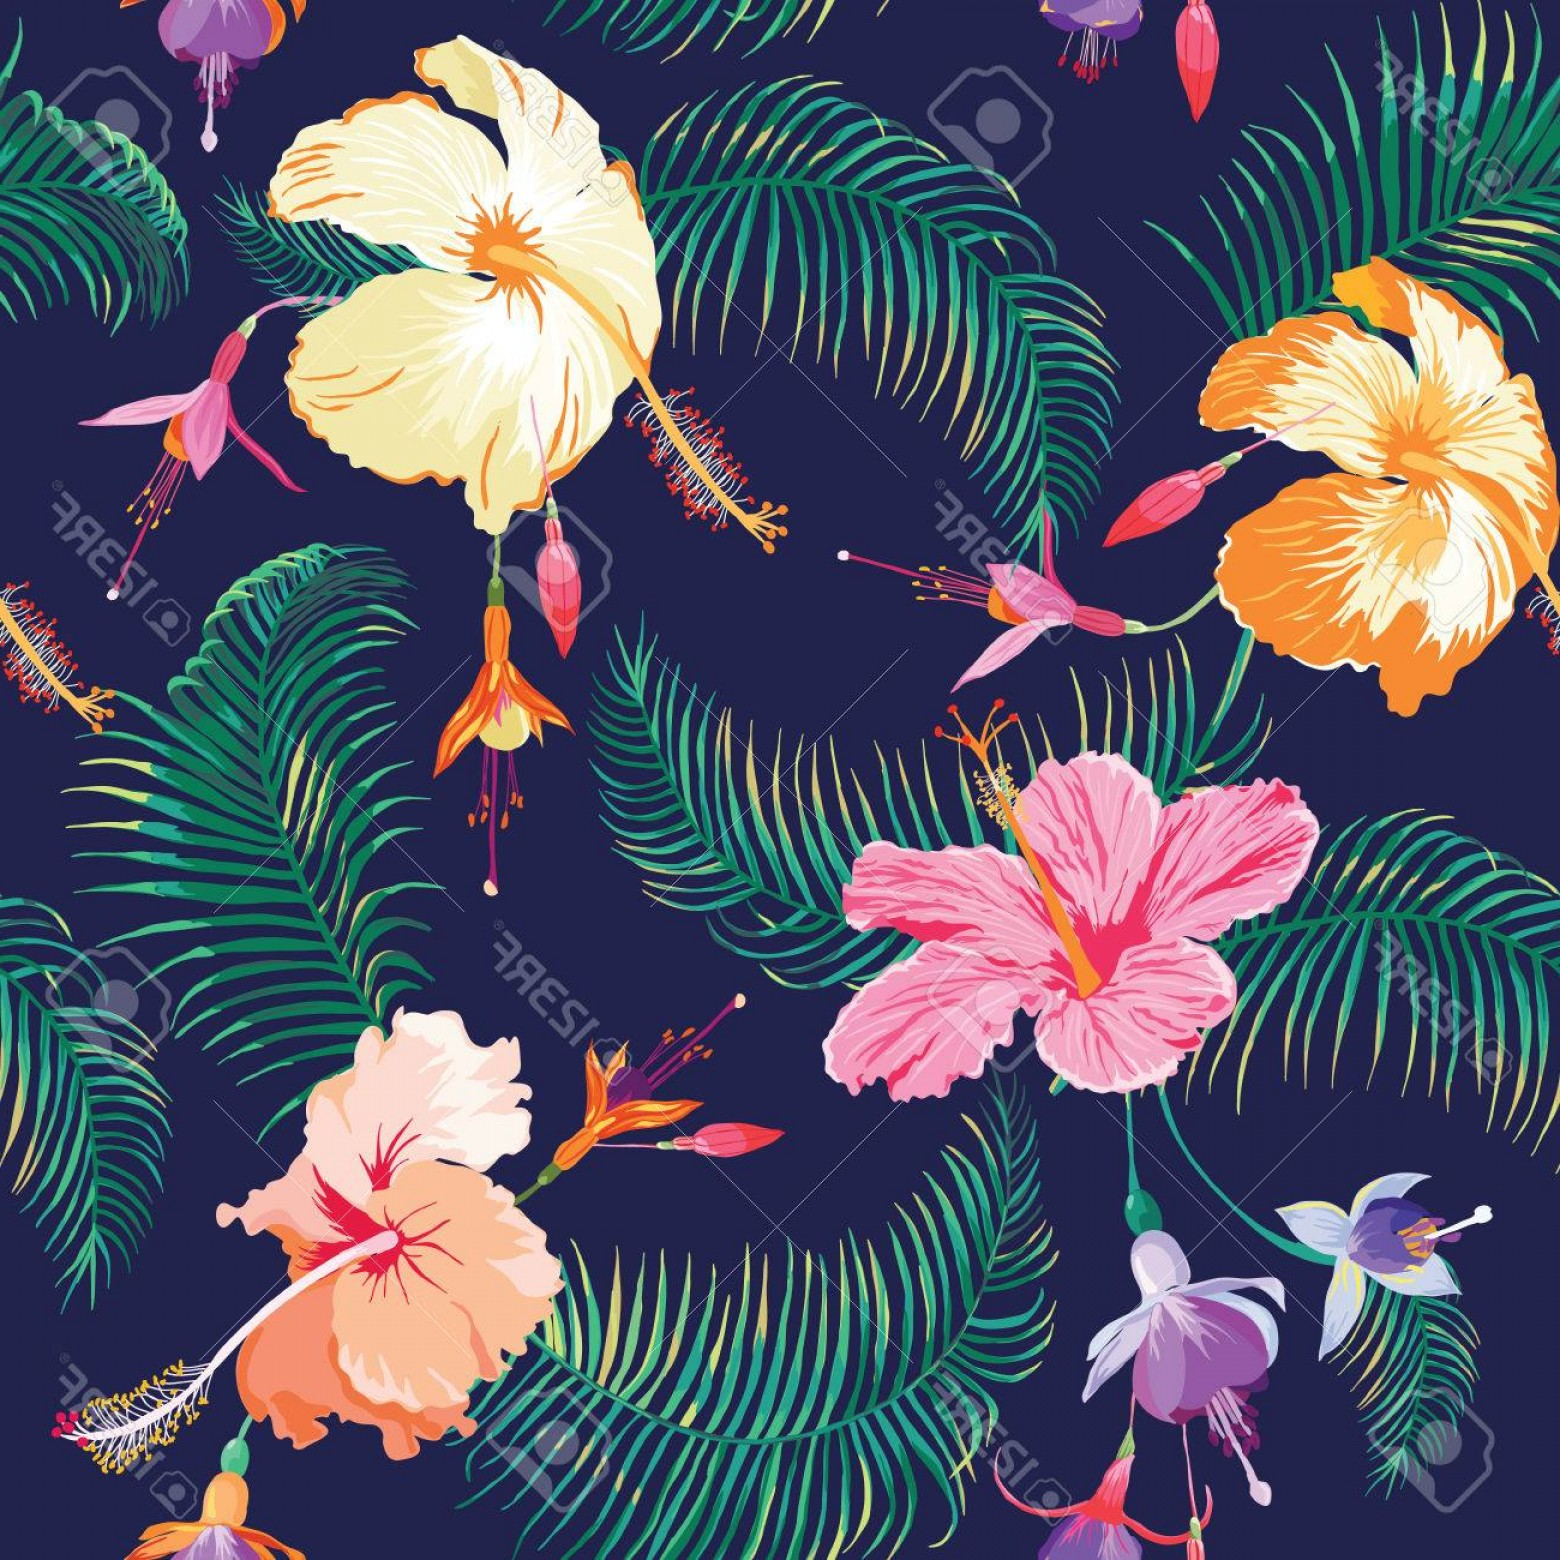 Hawaiian Flower Seamless Vector Pattern: Gorgeous Photostock Vector Tropical Flower Background Vintage Seamless Pattern In Vector